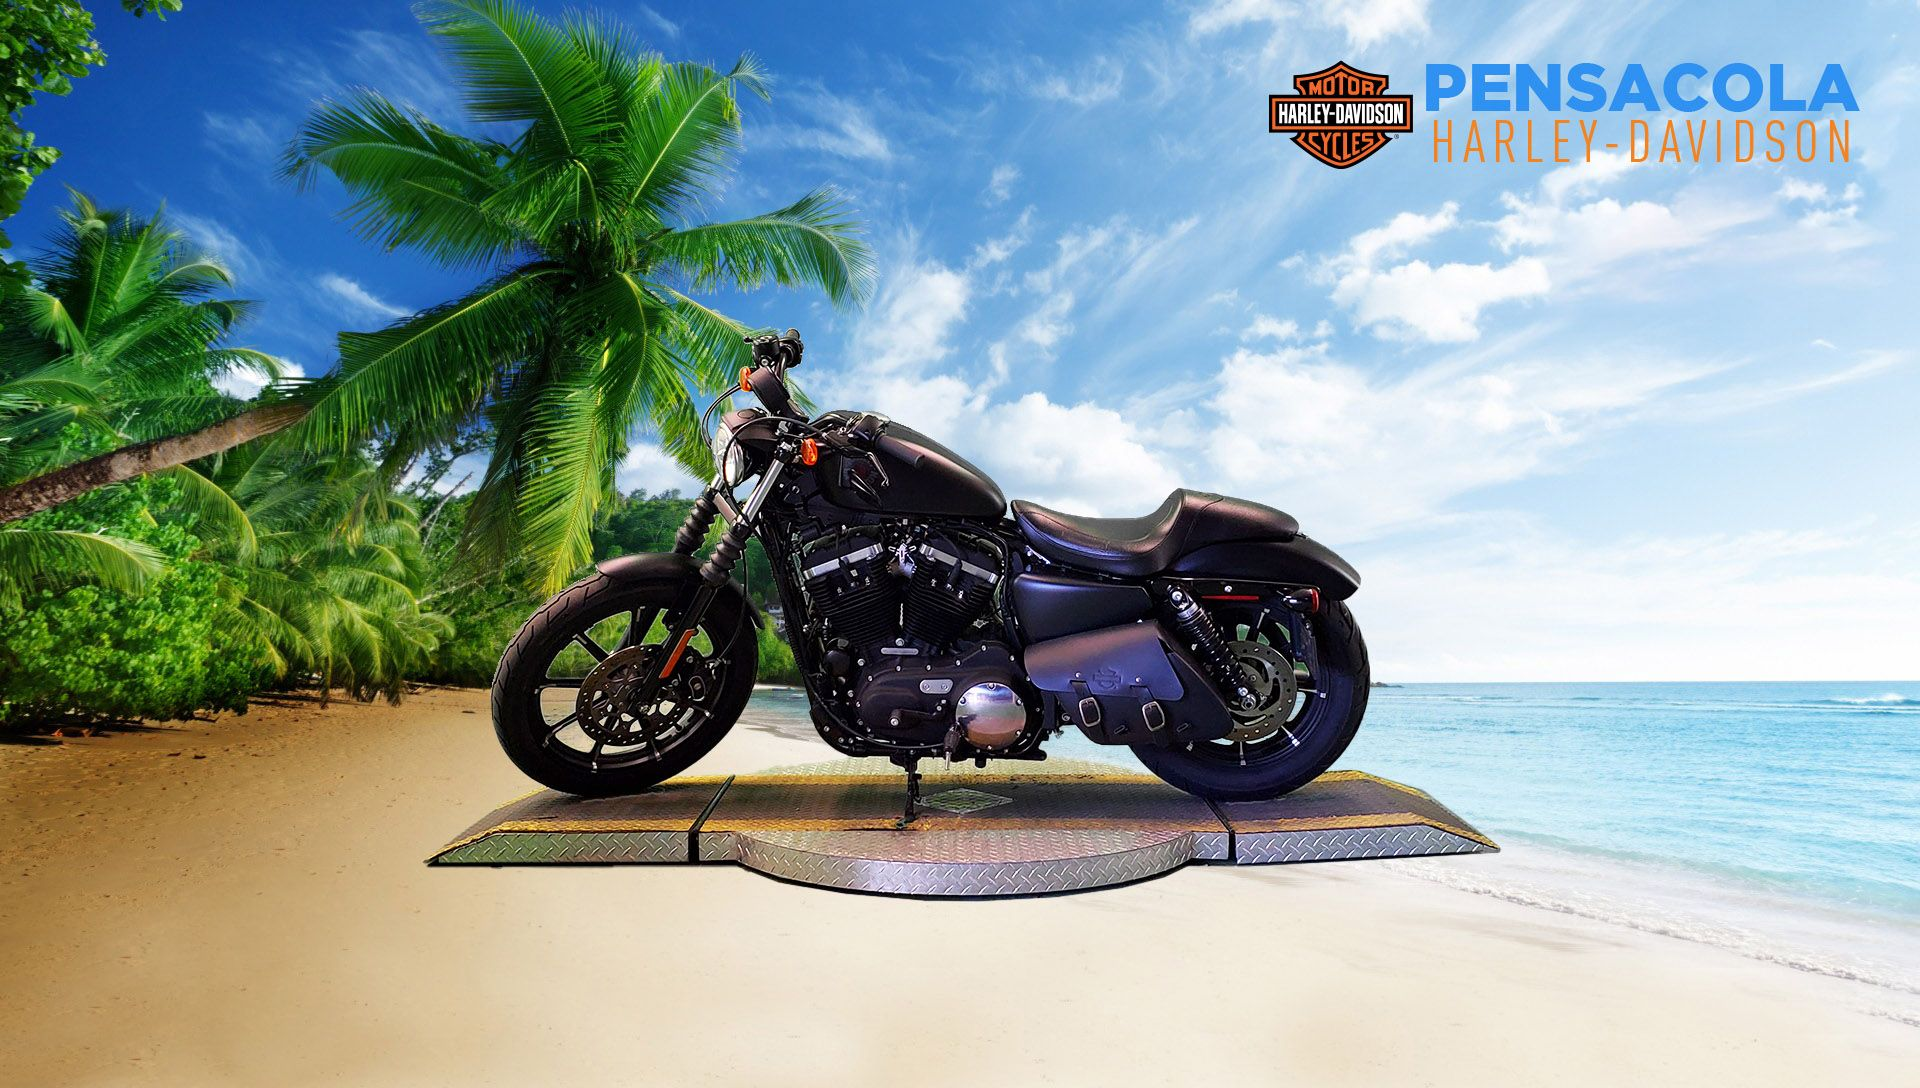 Pre-Owned 2021 Harley-Davidson Iron 883 XL883N